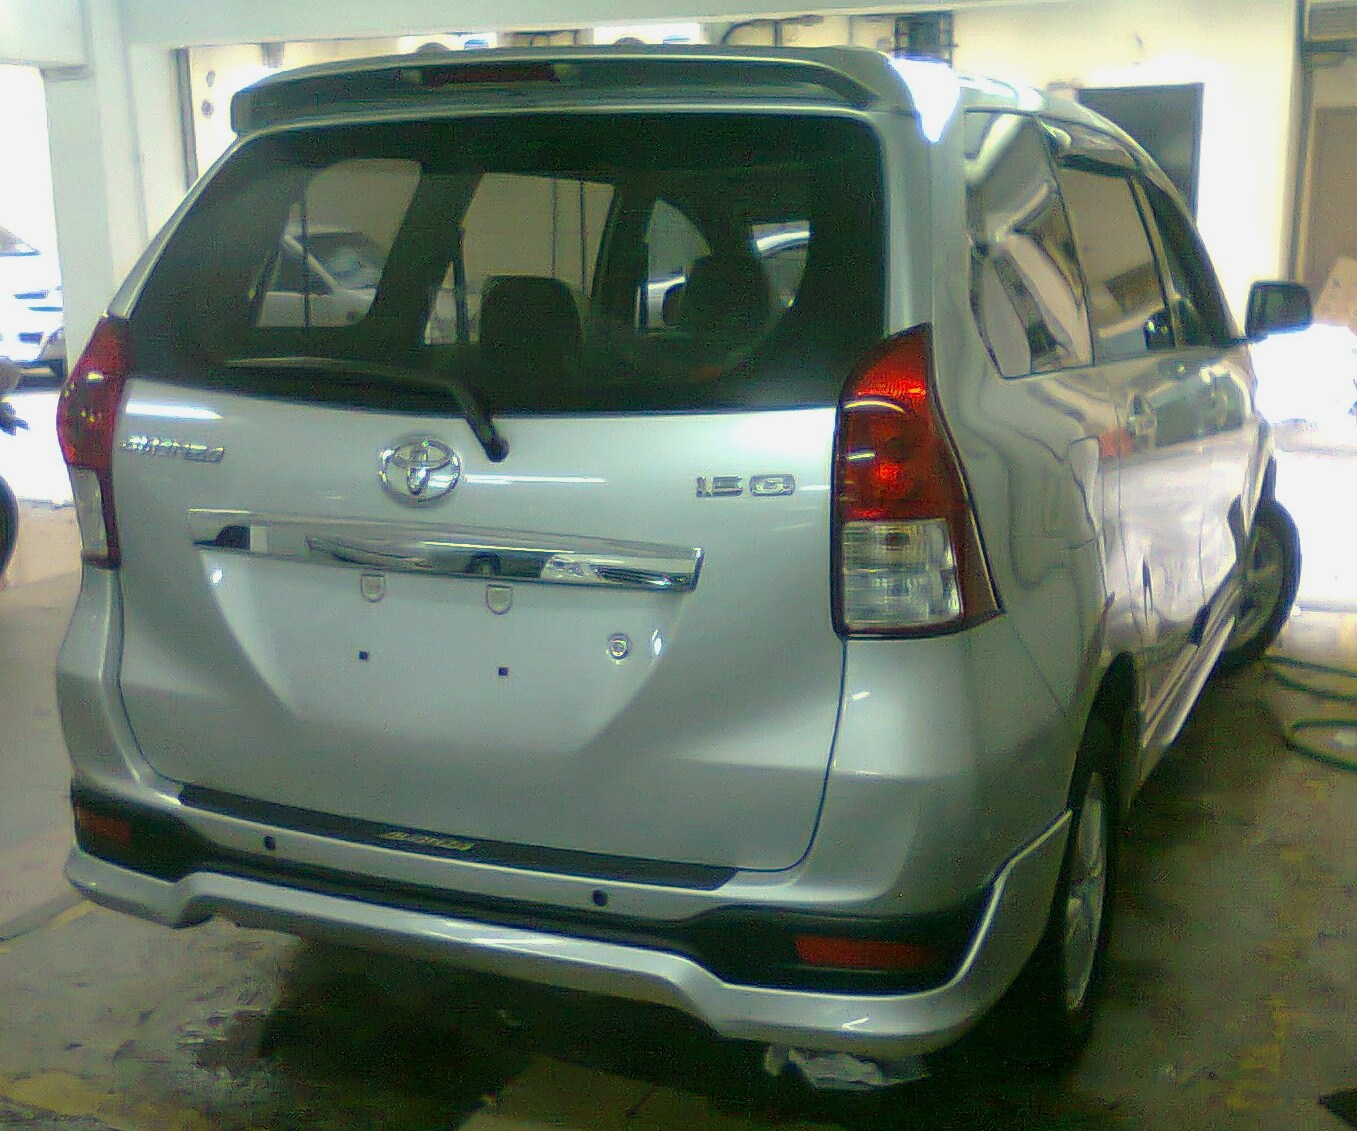 grand new avanza g 1.5 hitam 2013 brand toyota 1 3 and 5 vvt i toyotanewcars